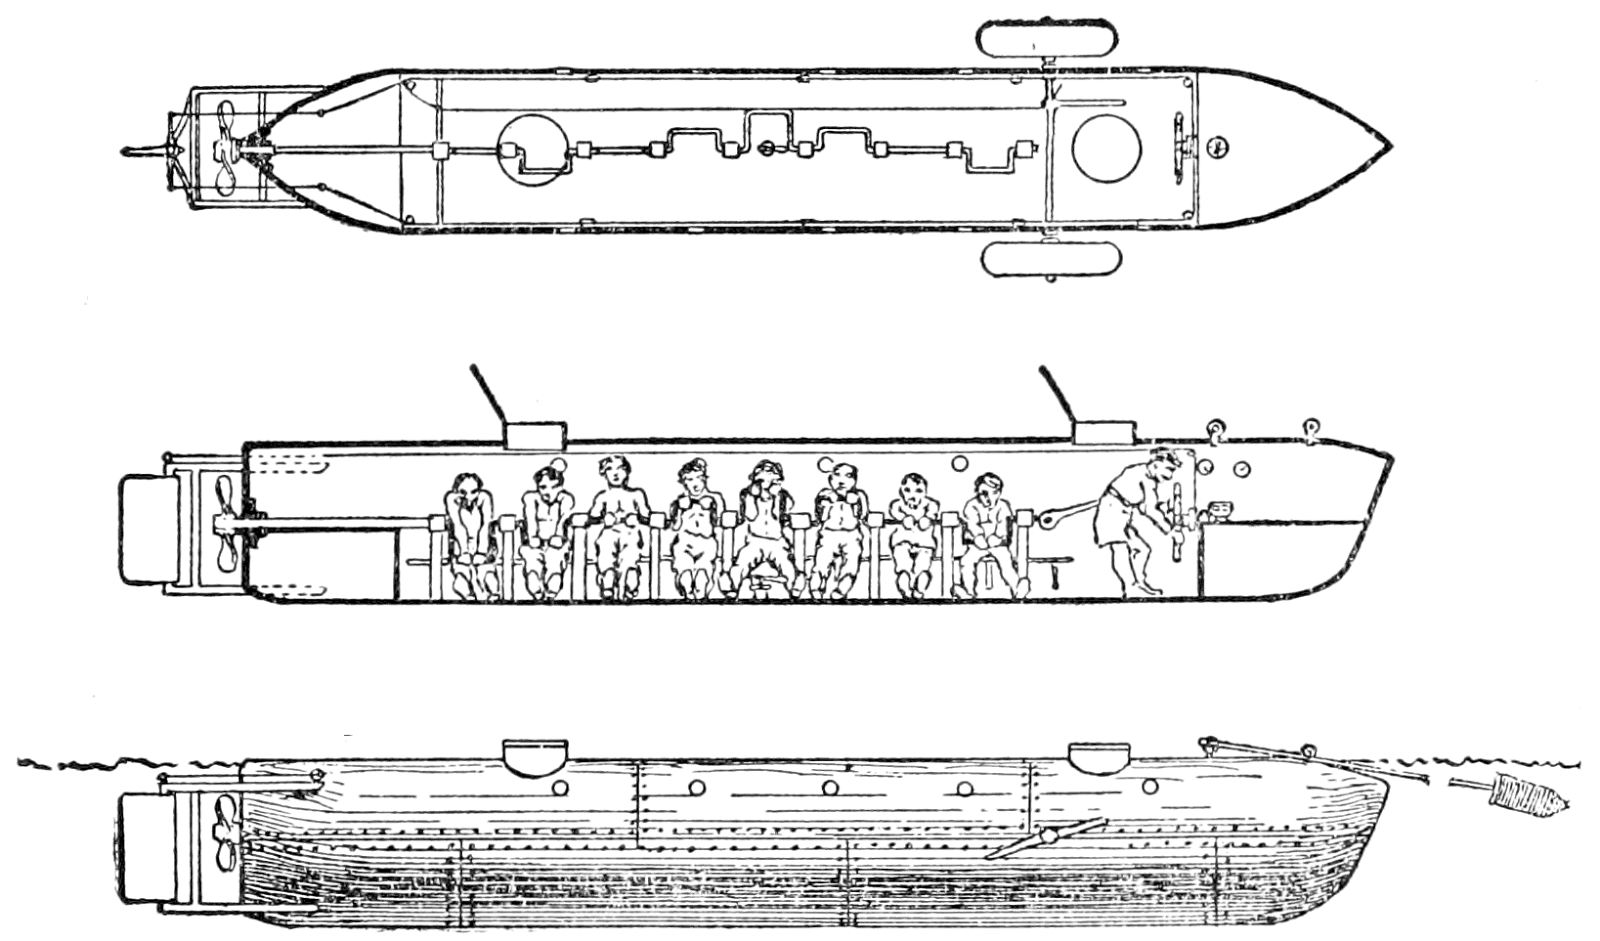 Parts Of A Submarine Diagram 1950 Farmall Super Wiring The First Attack  150 Years Ago Today